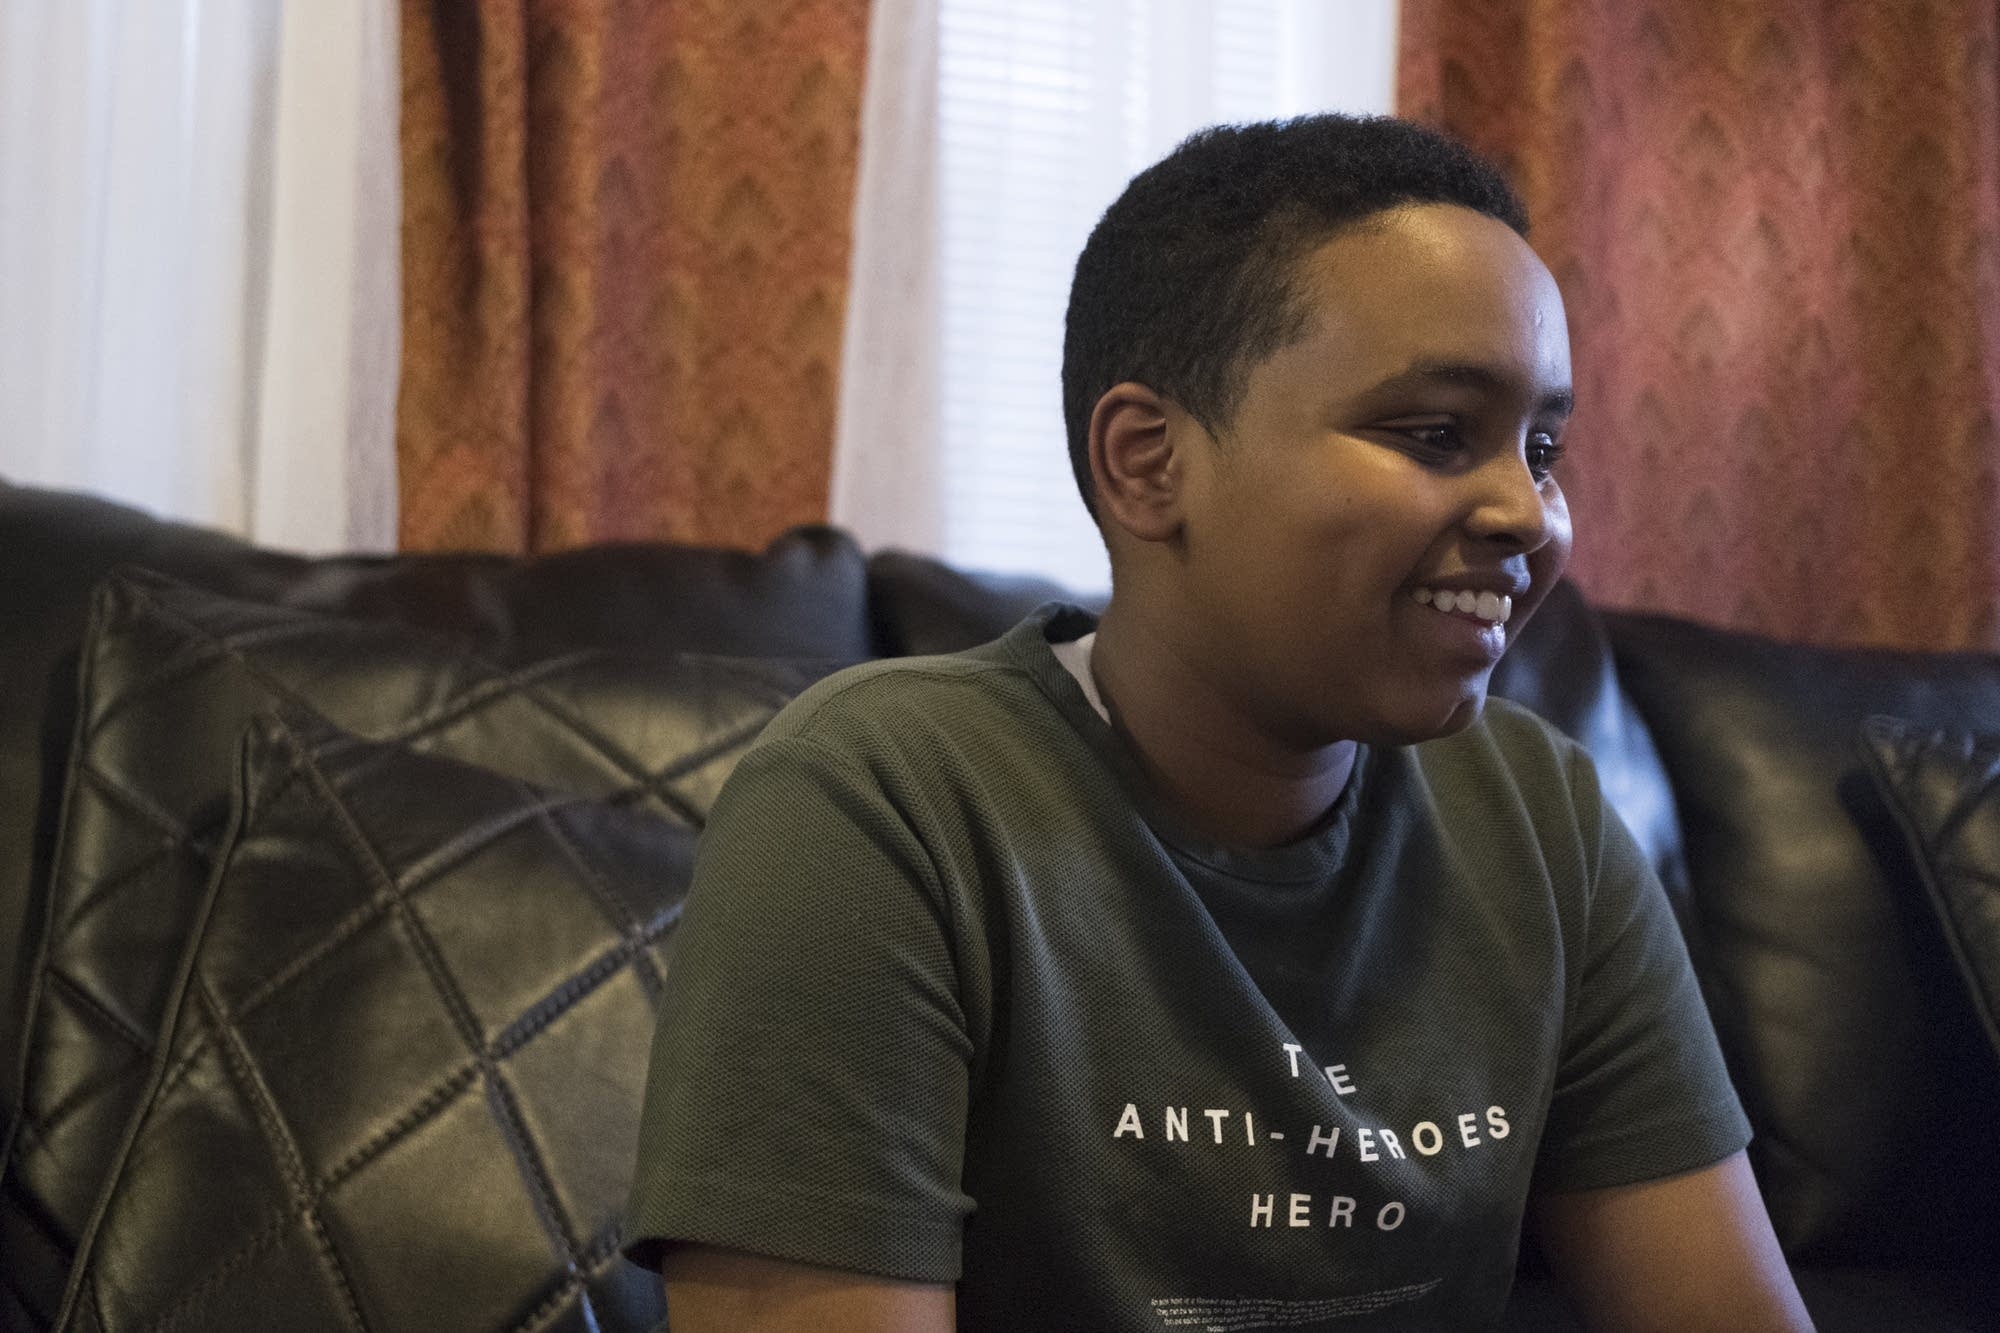 Fourteen-year-old Yusuf Dayur smiles during an interview